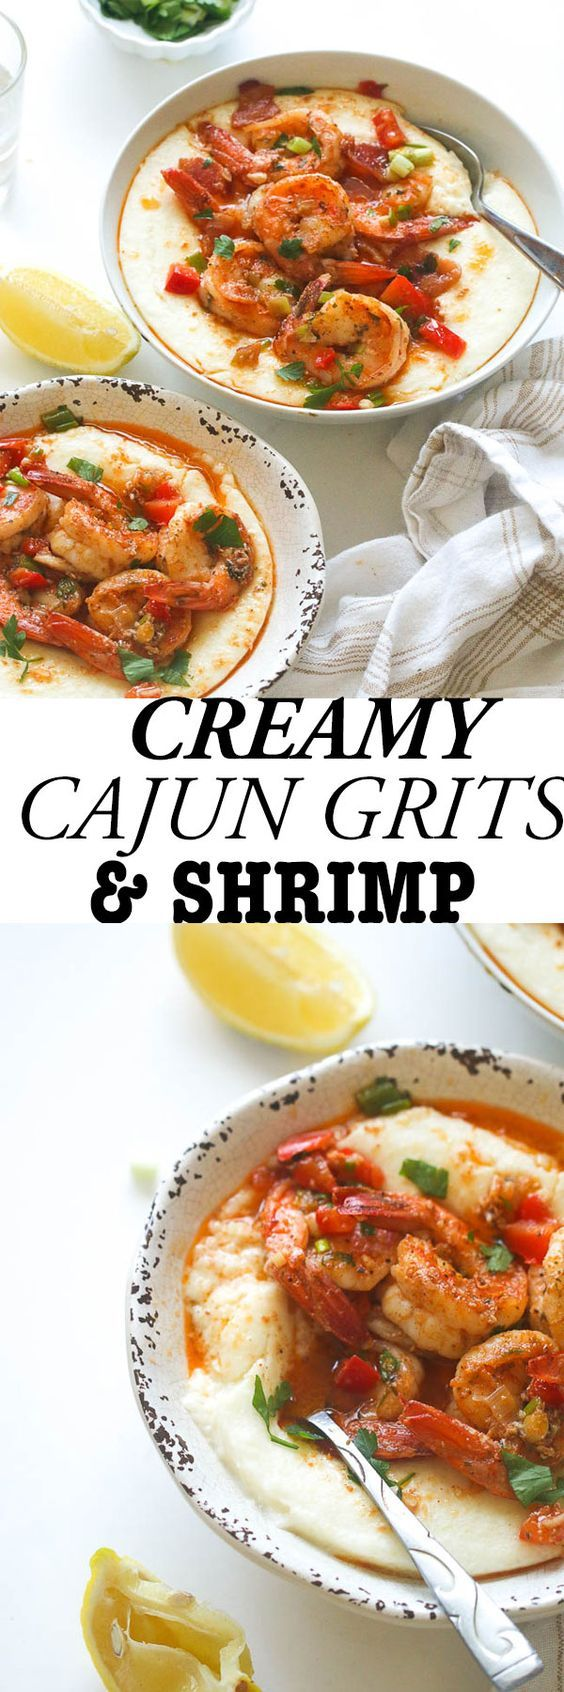 Cajun Shrimp and Grits- Creamy Grits  with Cajun Shrimp , a Southern Classic Elevated! With Bold and Spicy Seasonings .  Guaranteed to Please!